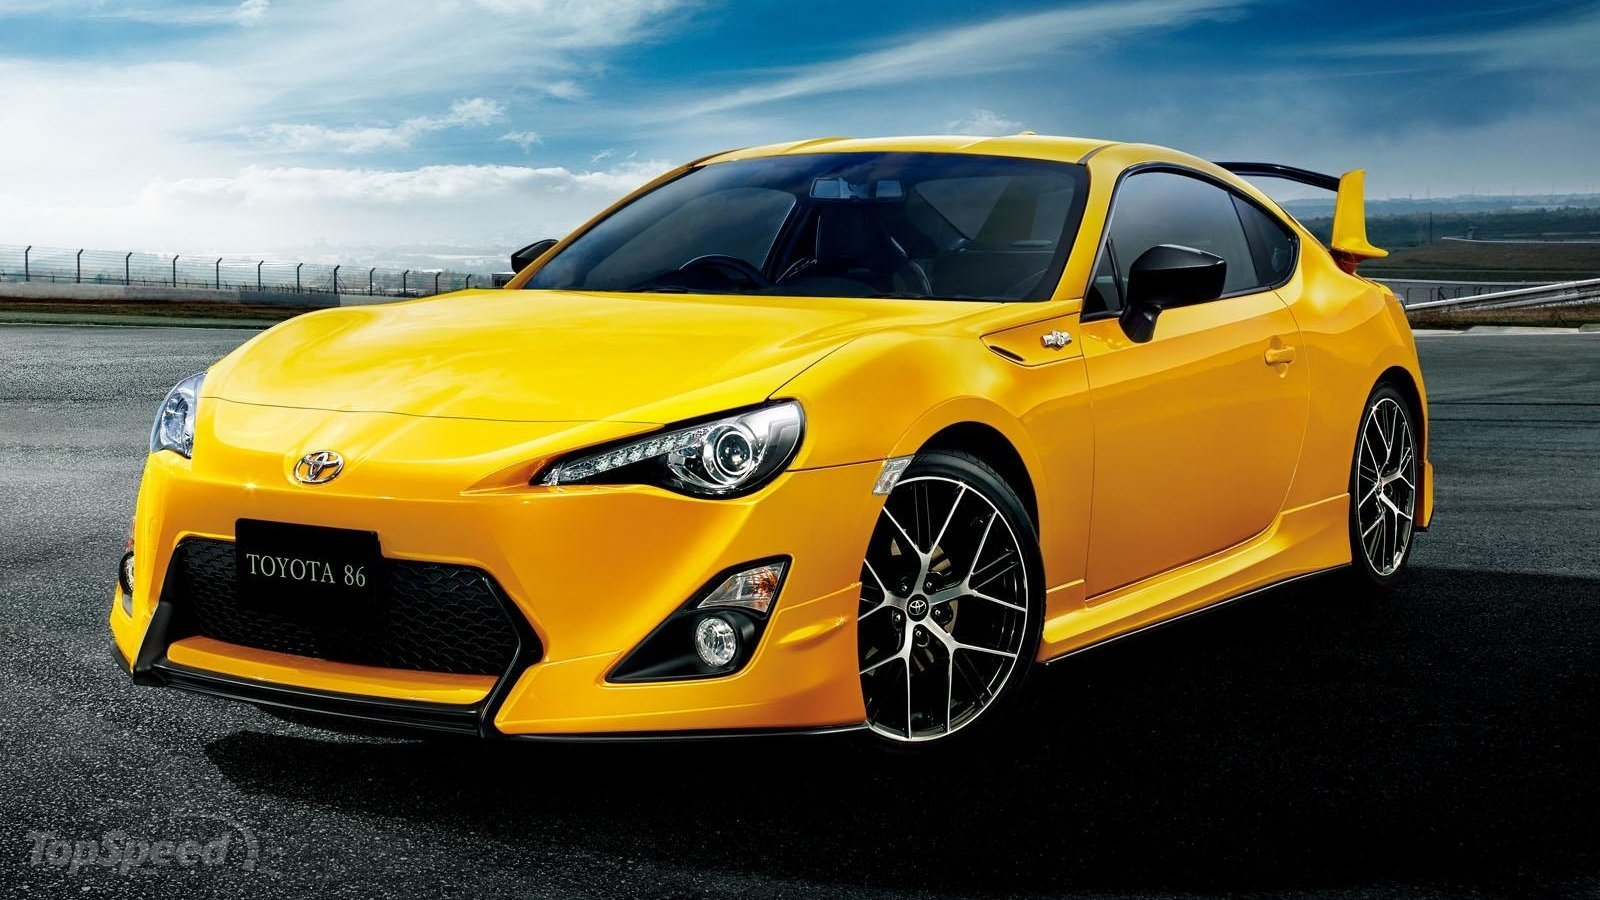 Ford Gt Interior >> 2015 Toyota 86 Yellow Limited | Top Speed